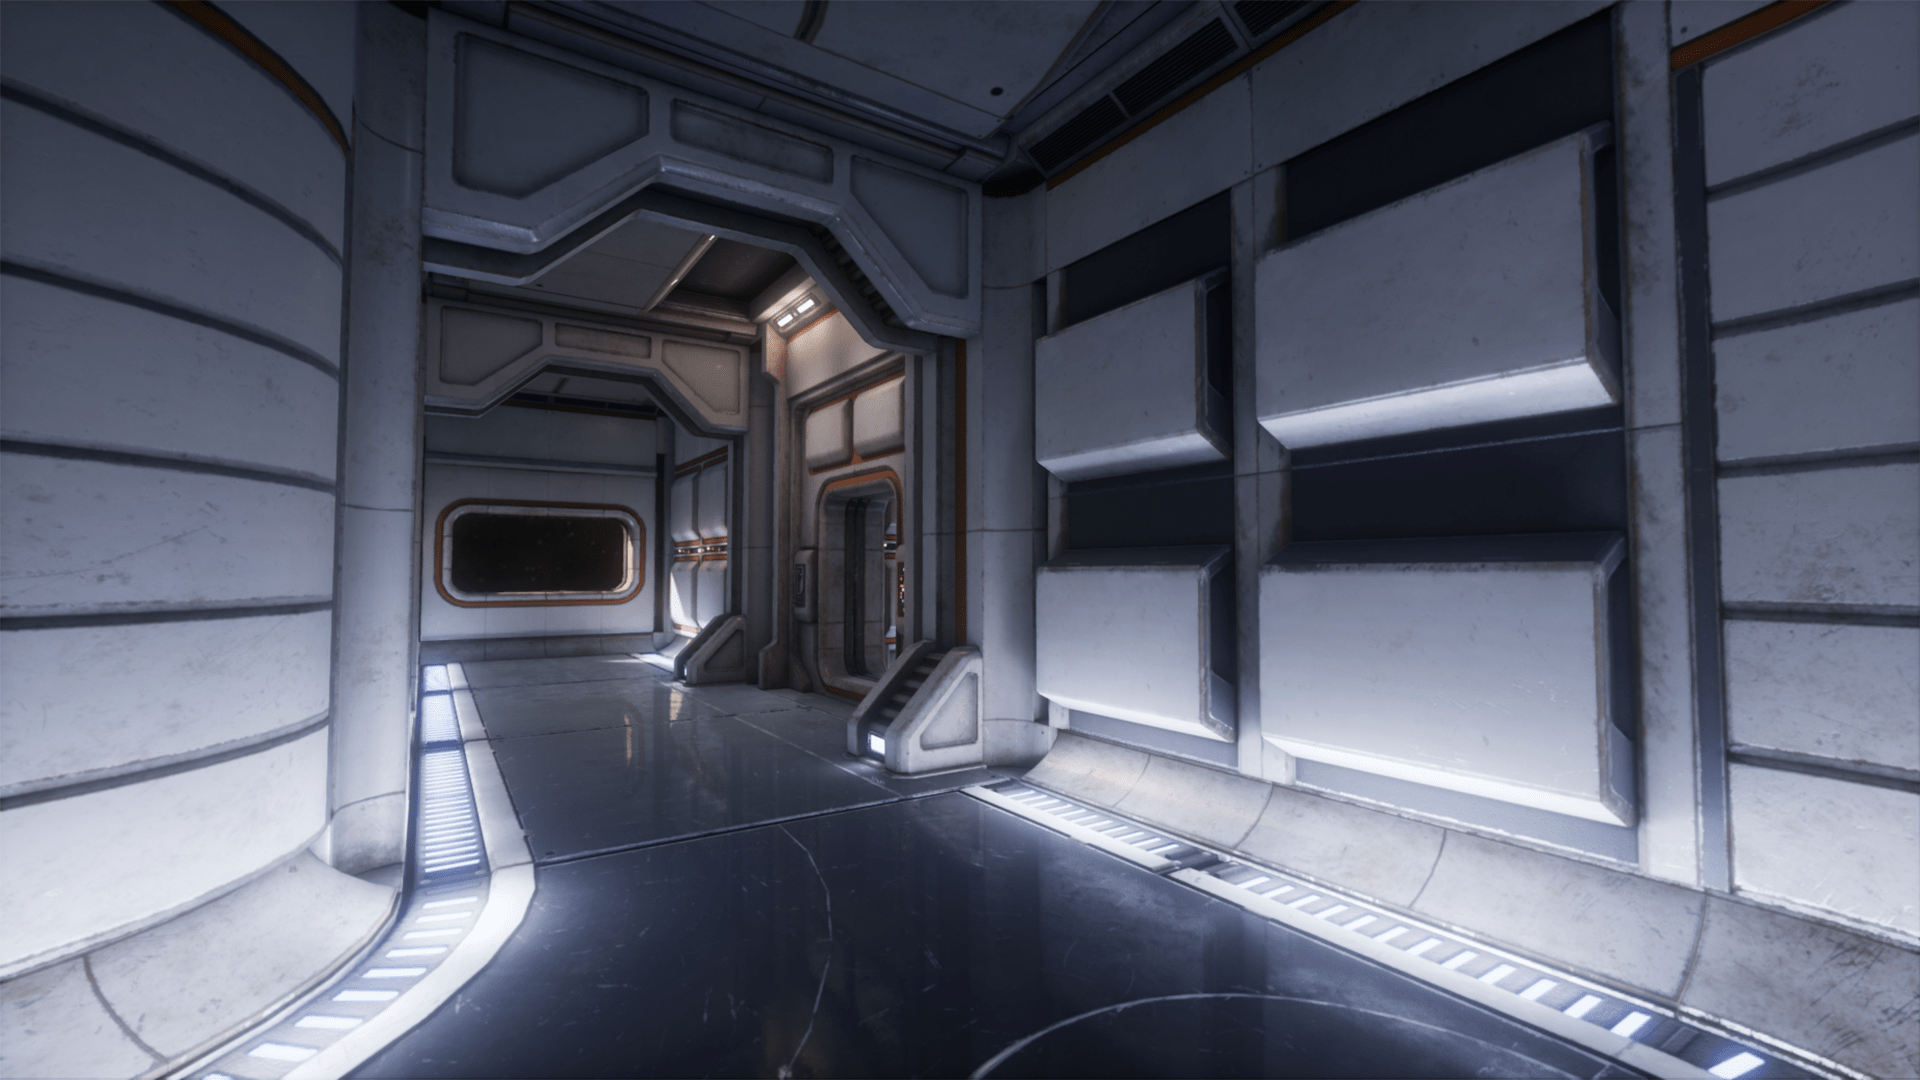 sci fi interior asset pack 1 by rickknox in environments ue4 marketplace. Black Bedroom Furniture Sets. Home Design Ideas